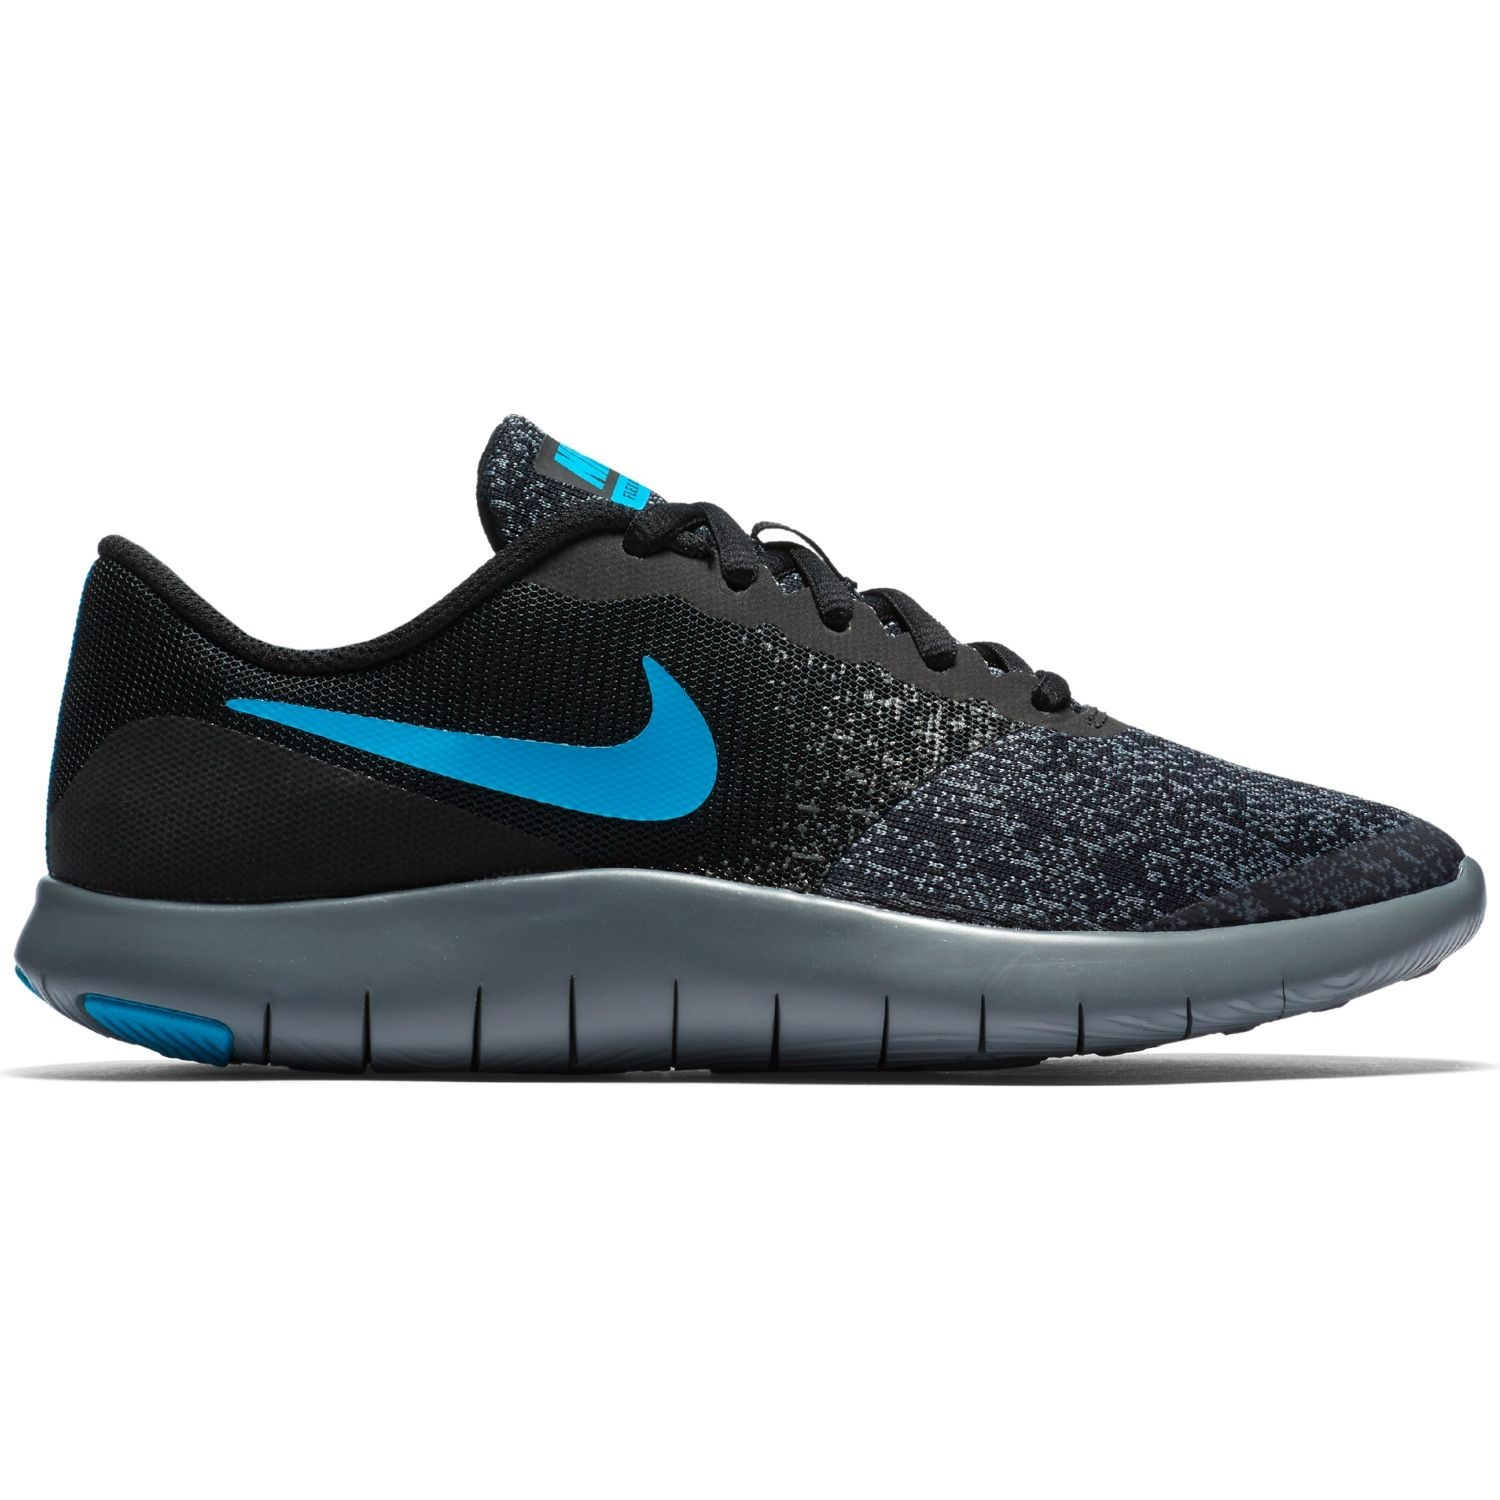 ff422281c26b Nike Flex Contact PSV - Kids Boys Running Shoes - Black Neo Turquoise Dark